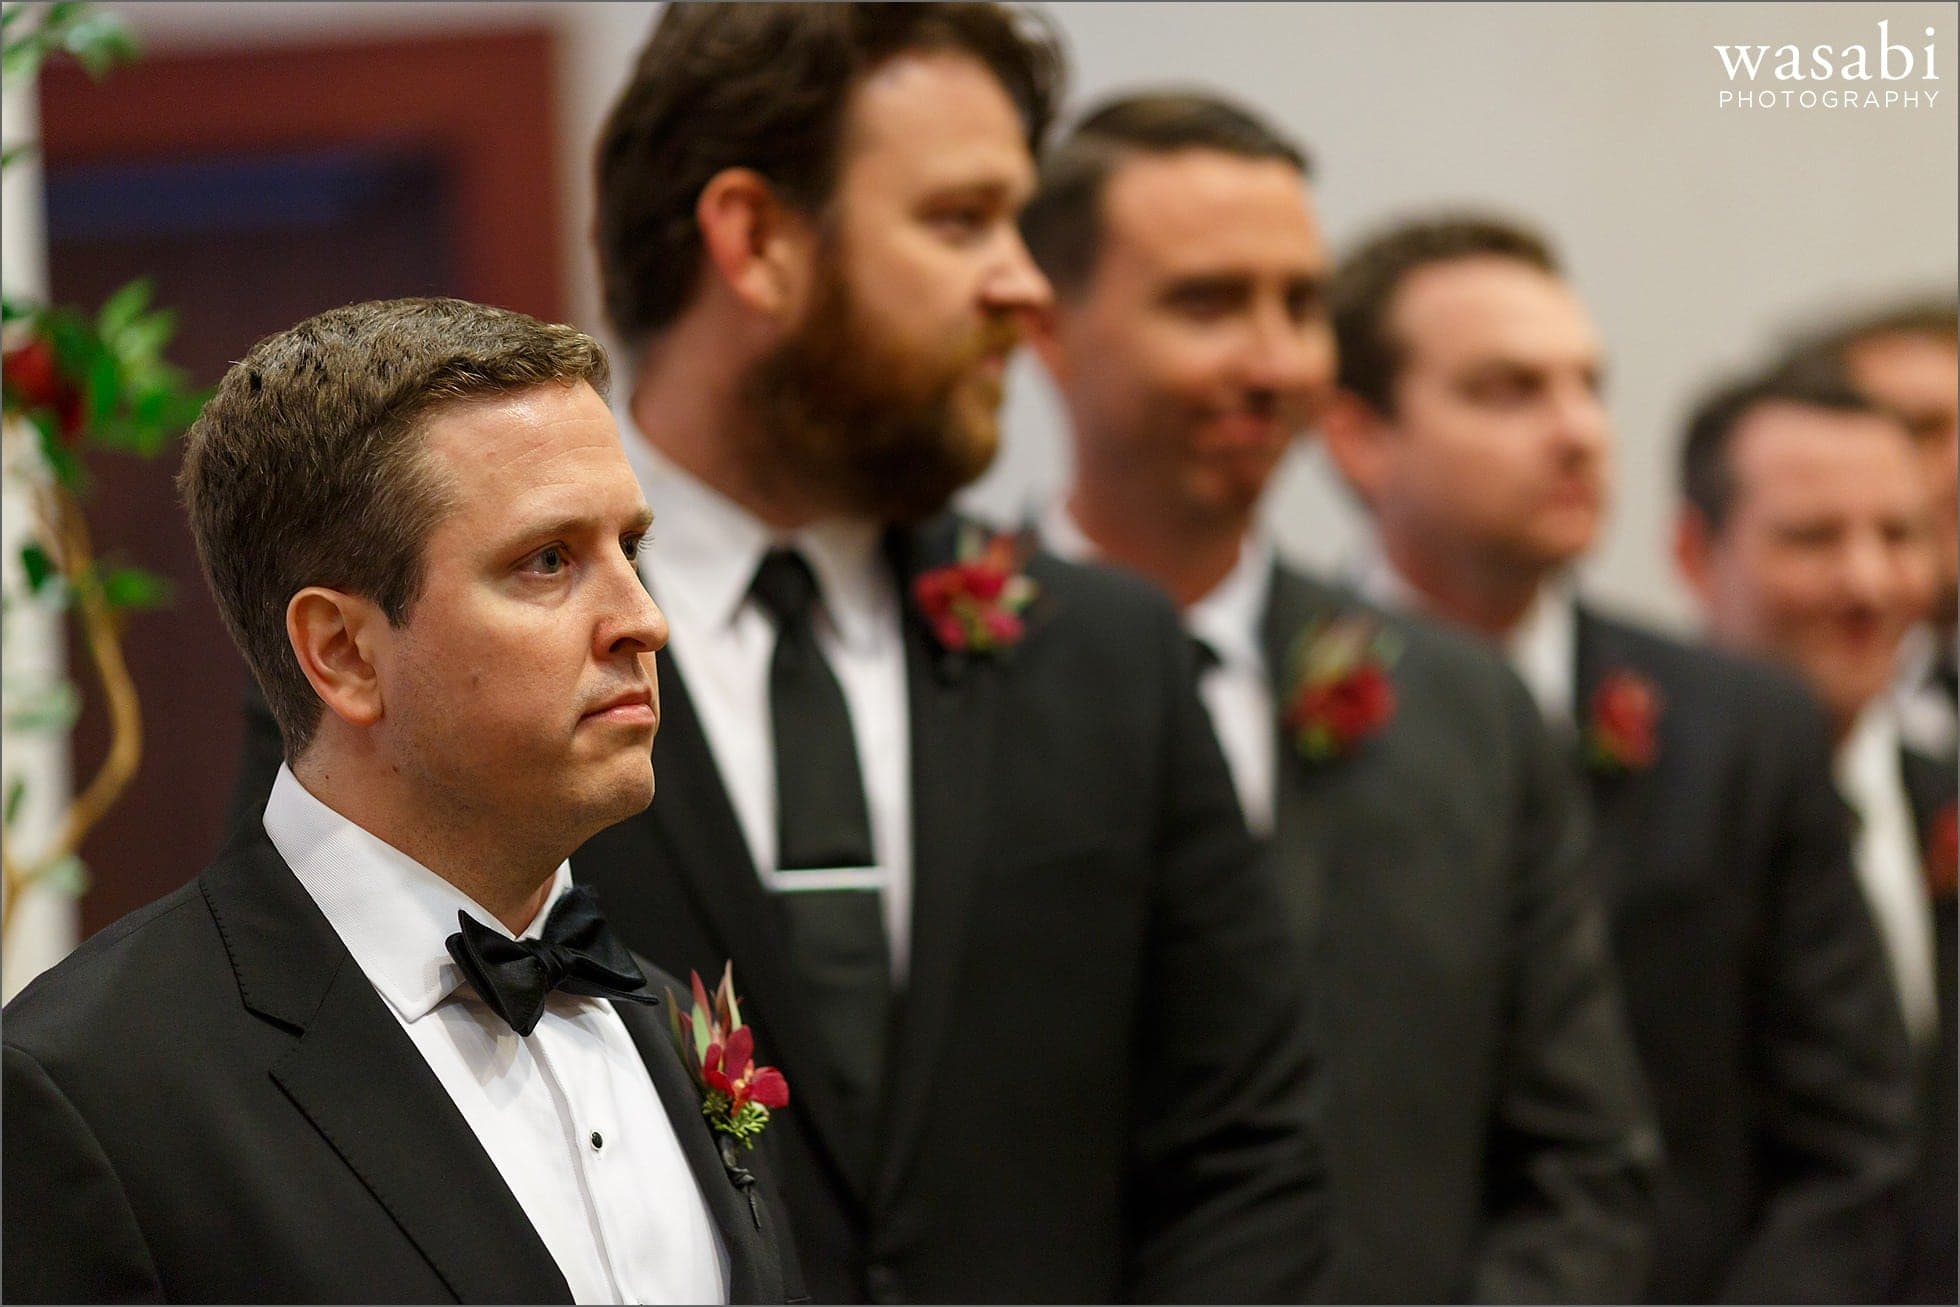 groom has a serious face while watching bride walk down the aisle during Lombard Westin Hotel wedding